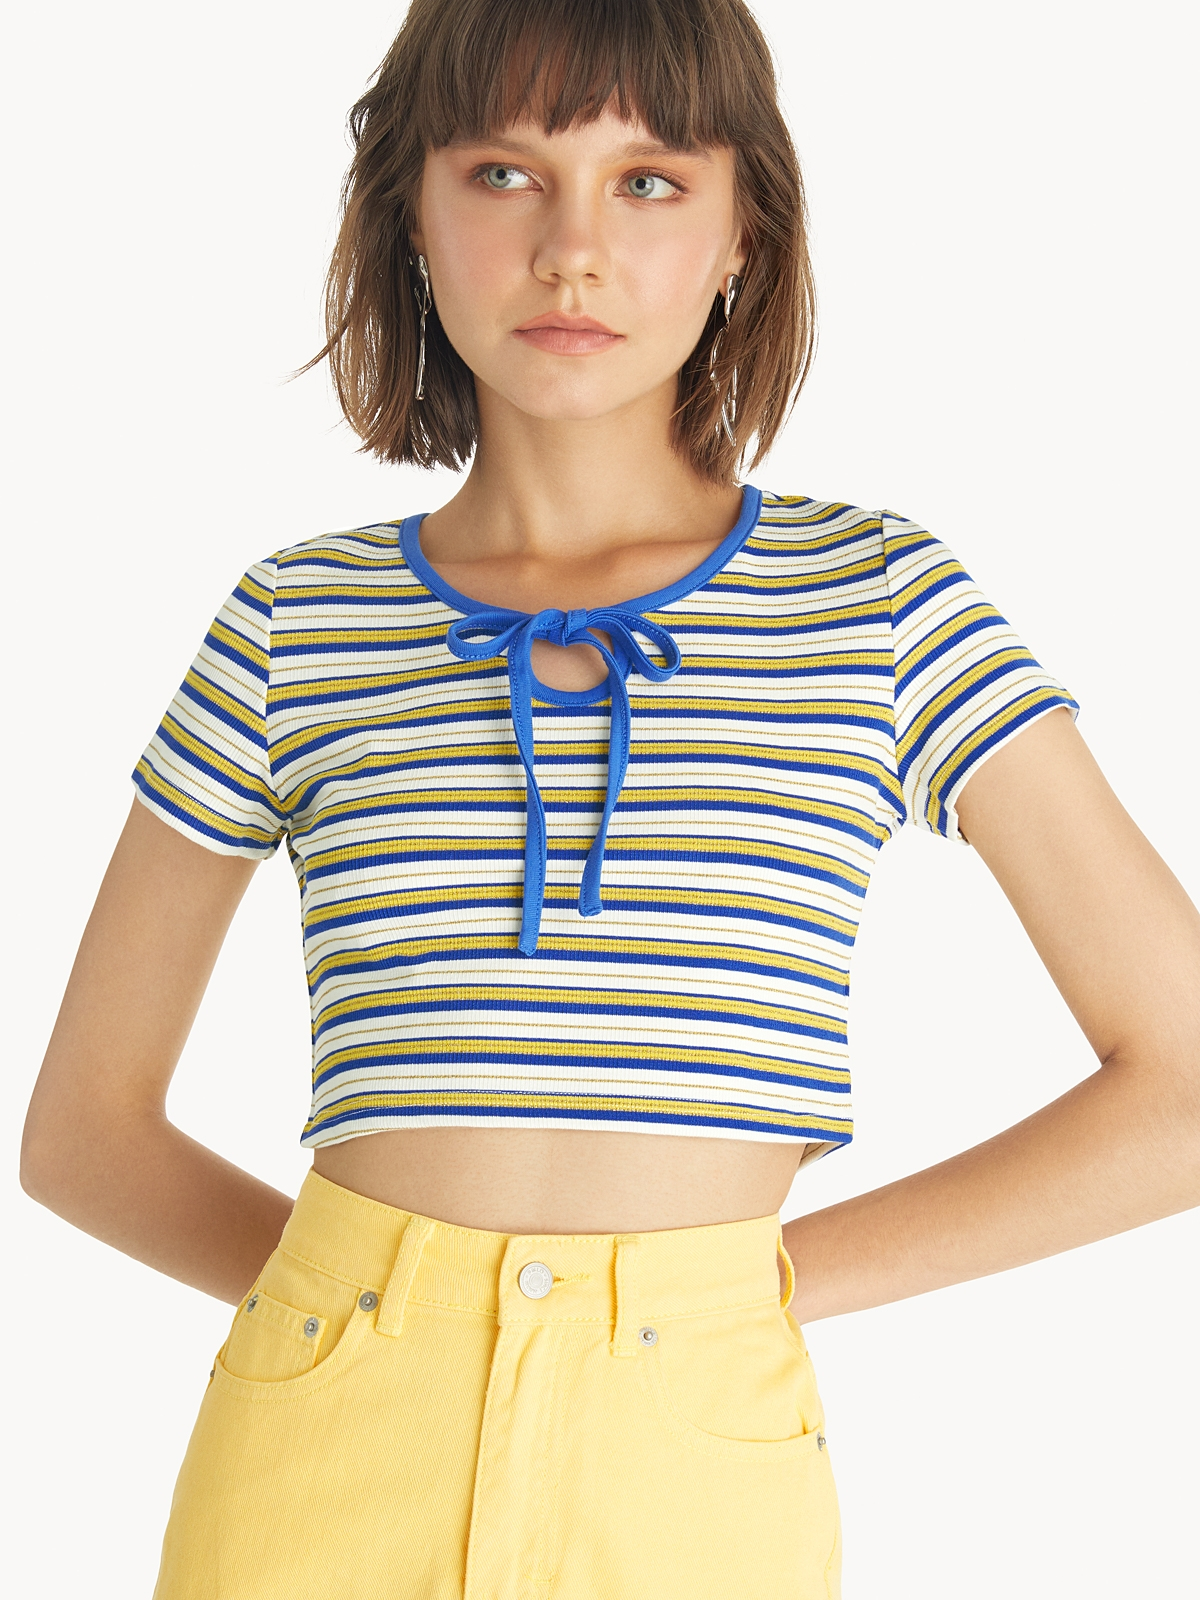 Cropped Bow Neck Top Pink